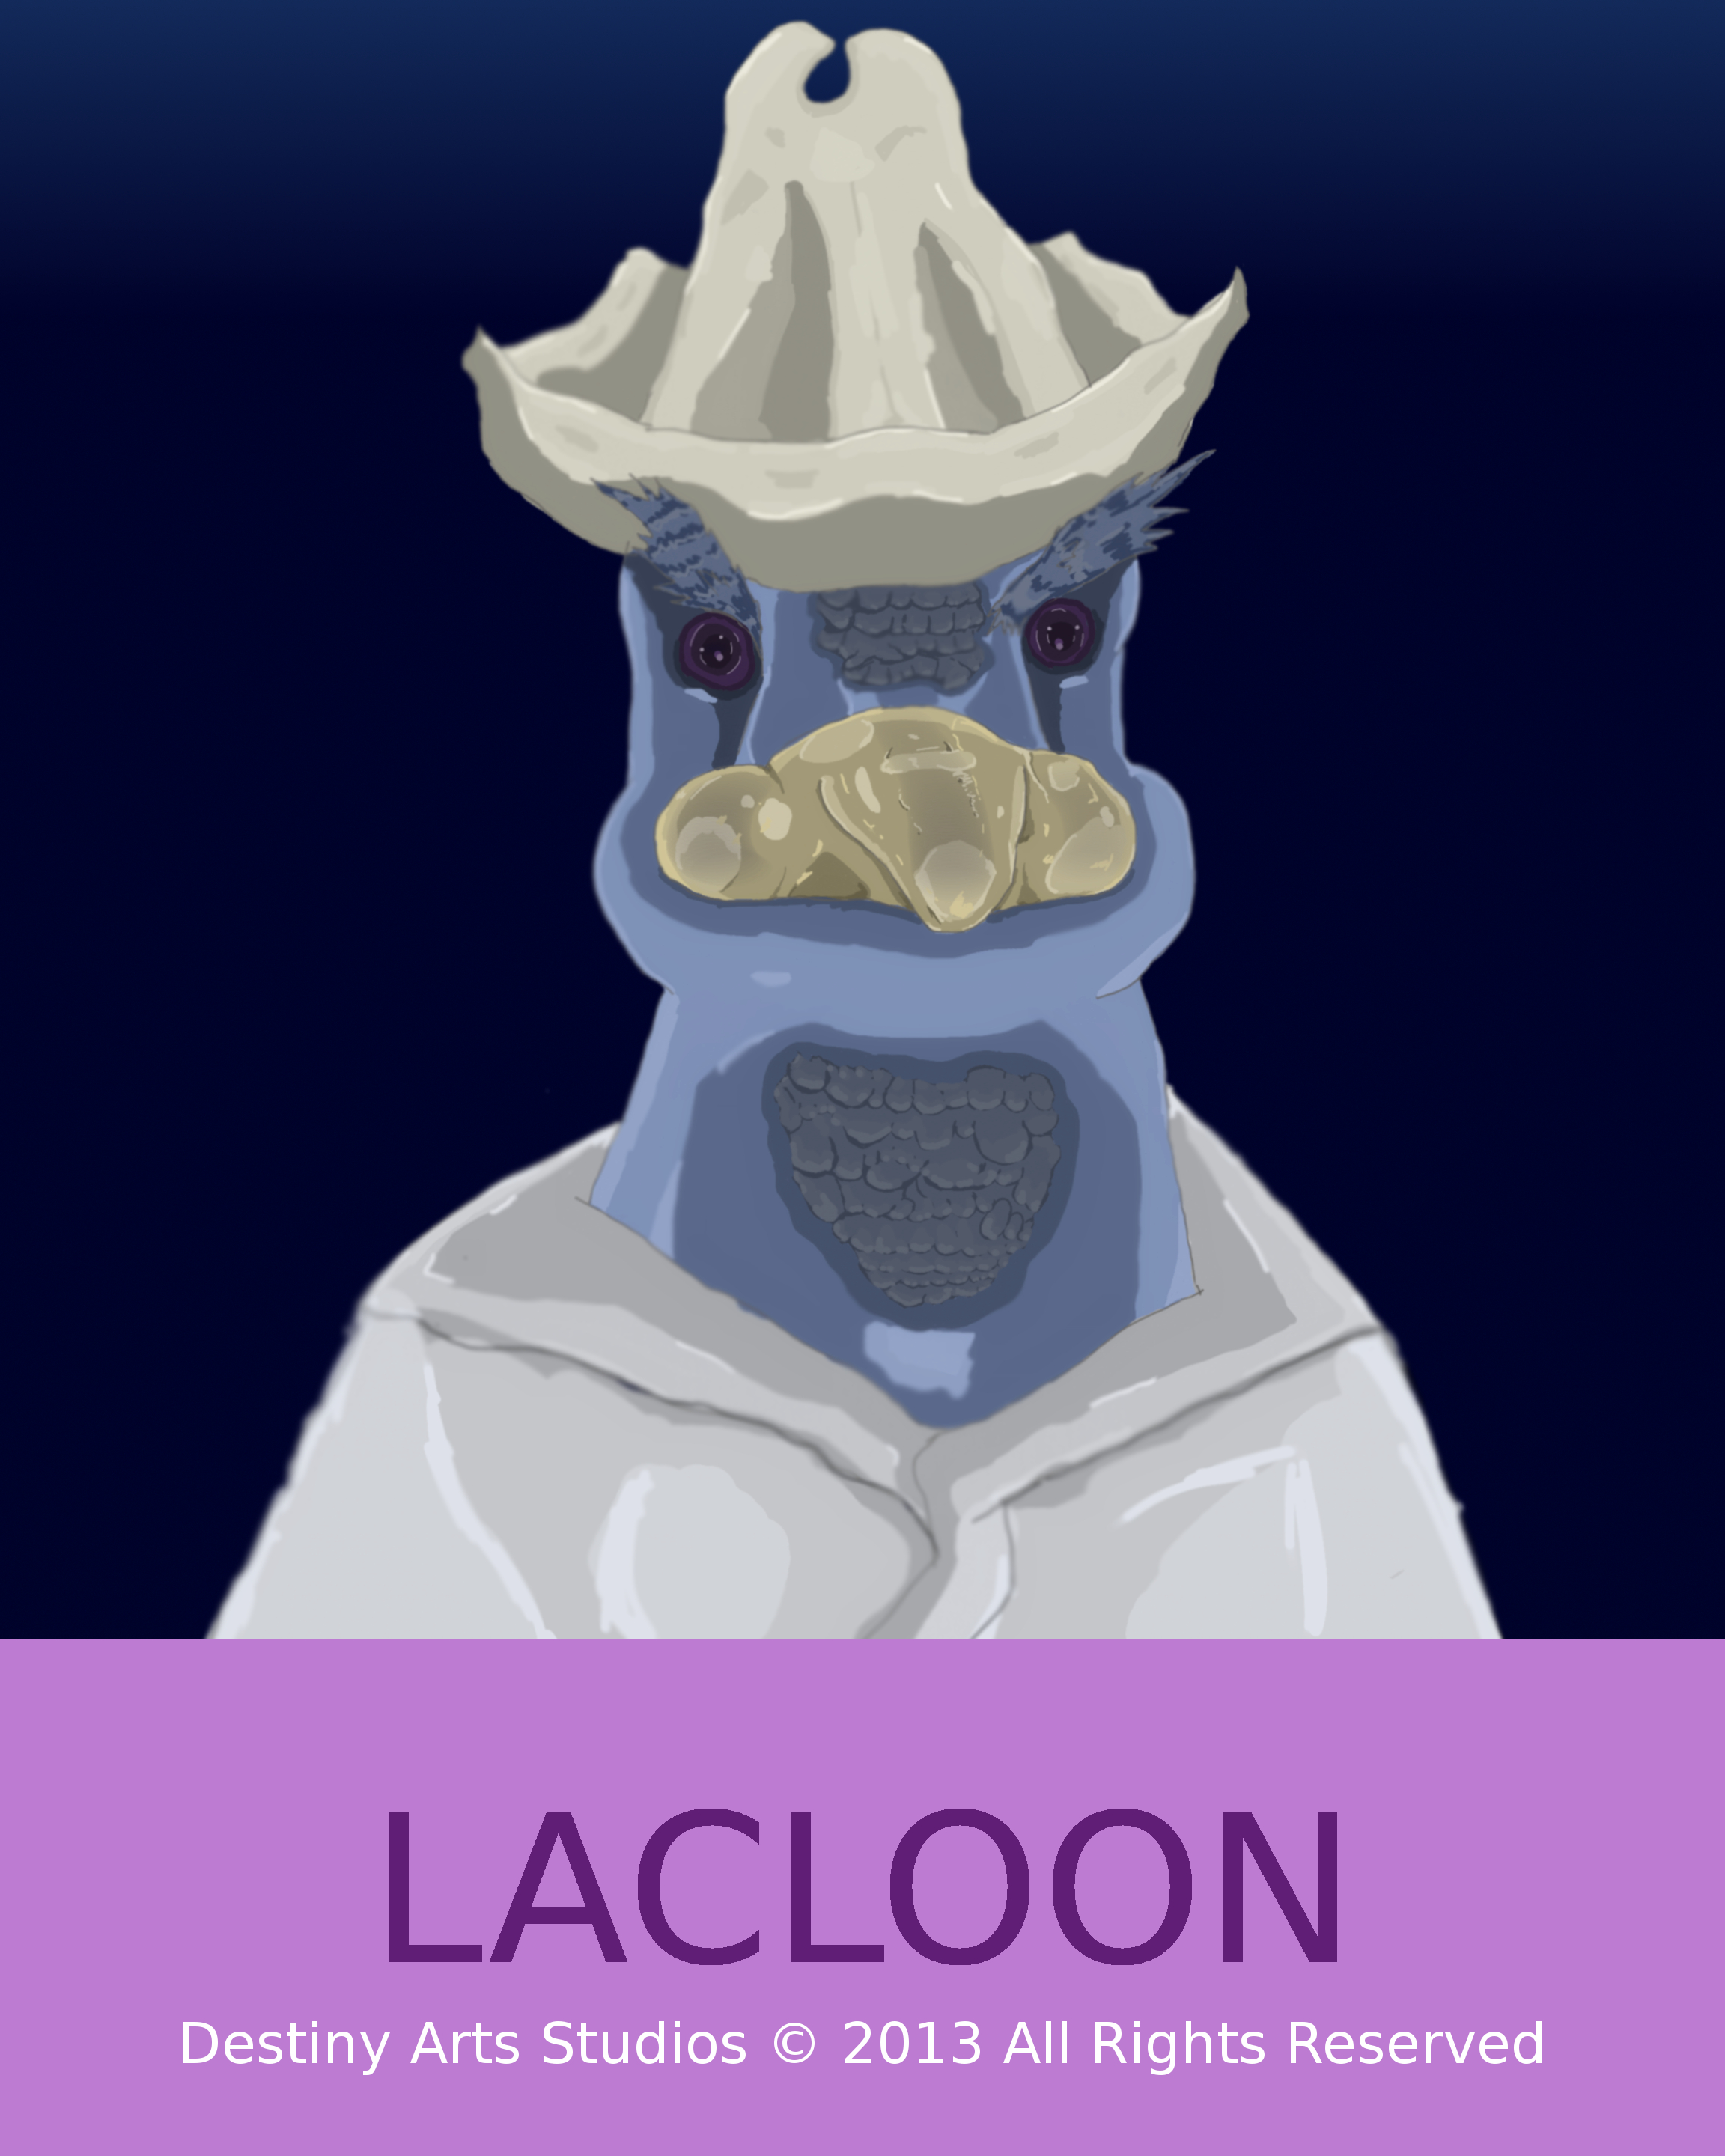 The Lacloon